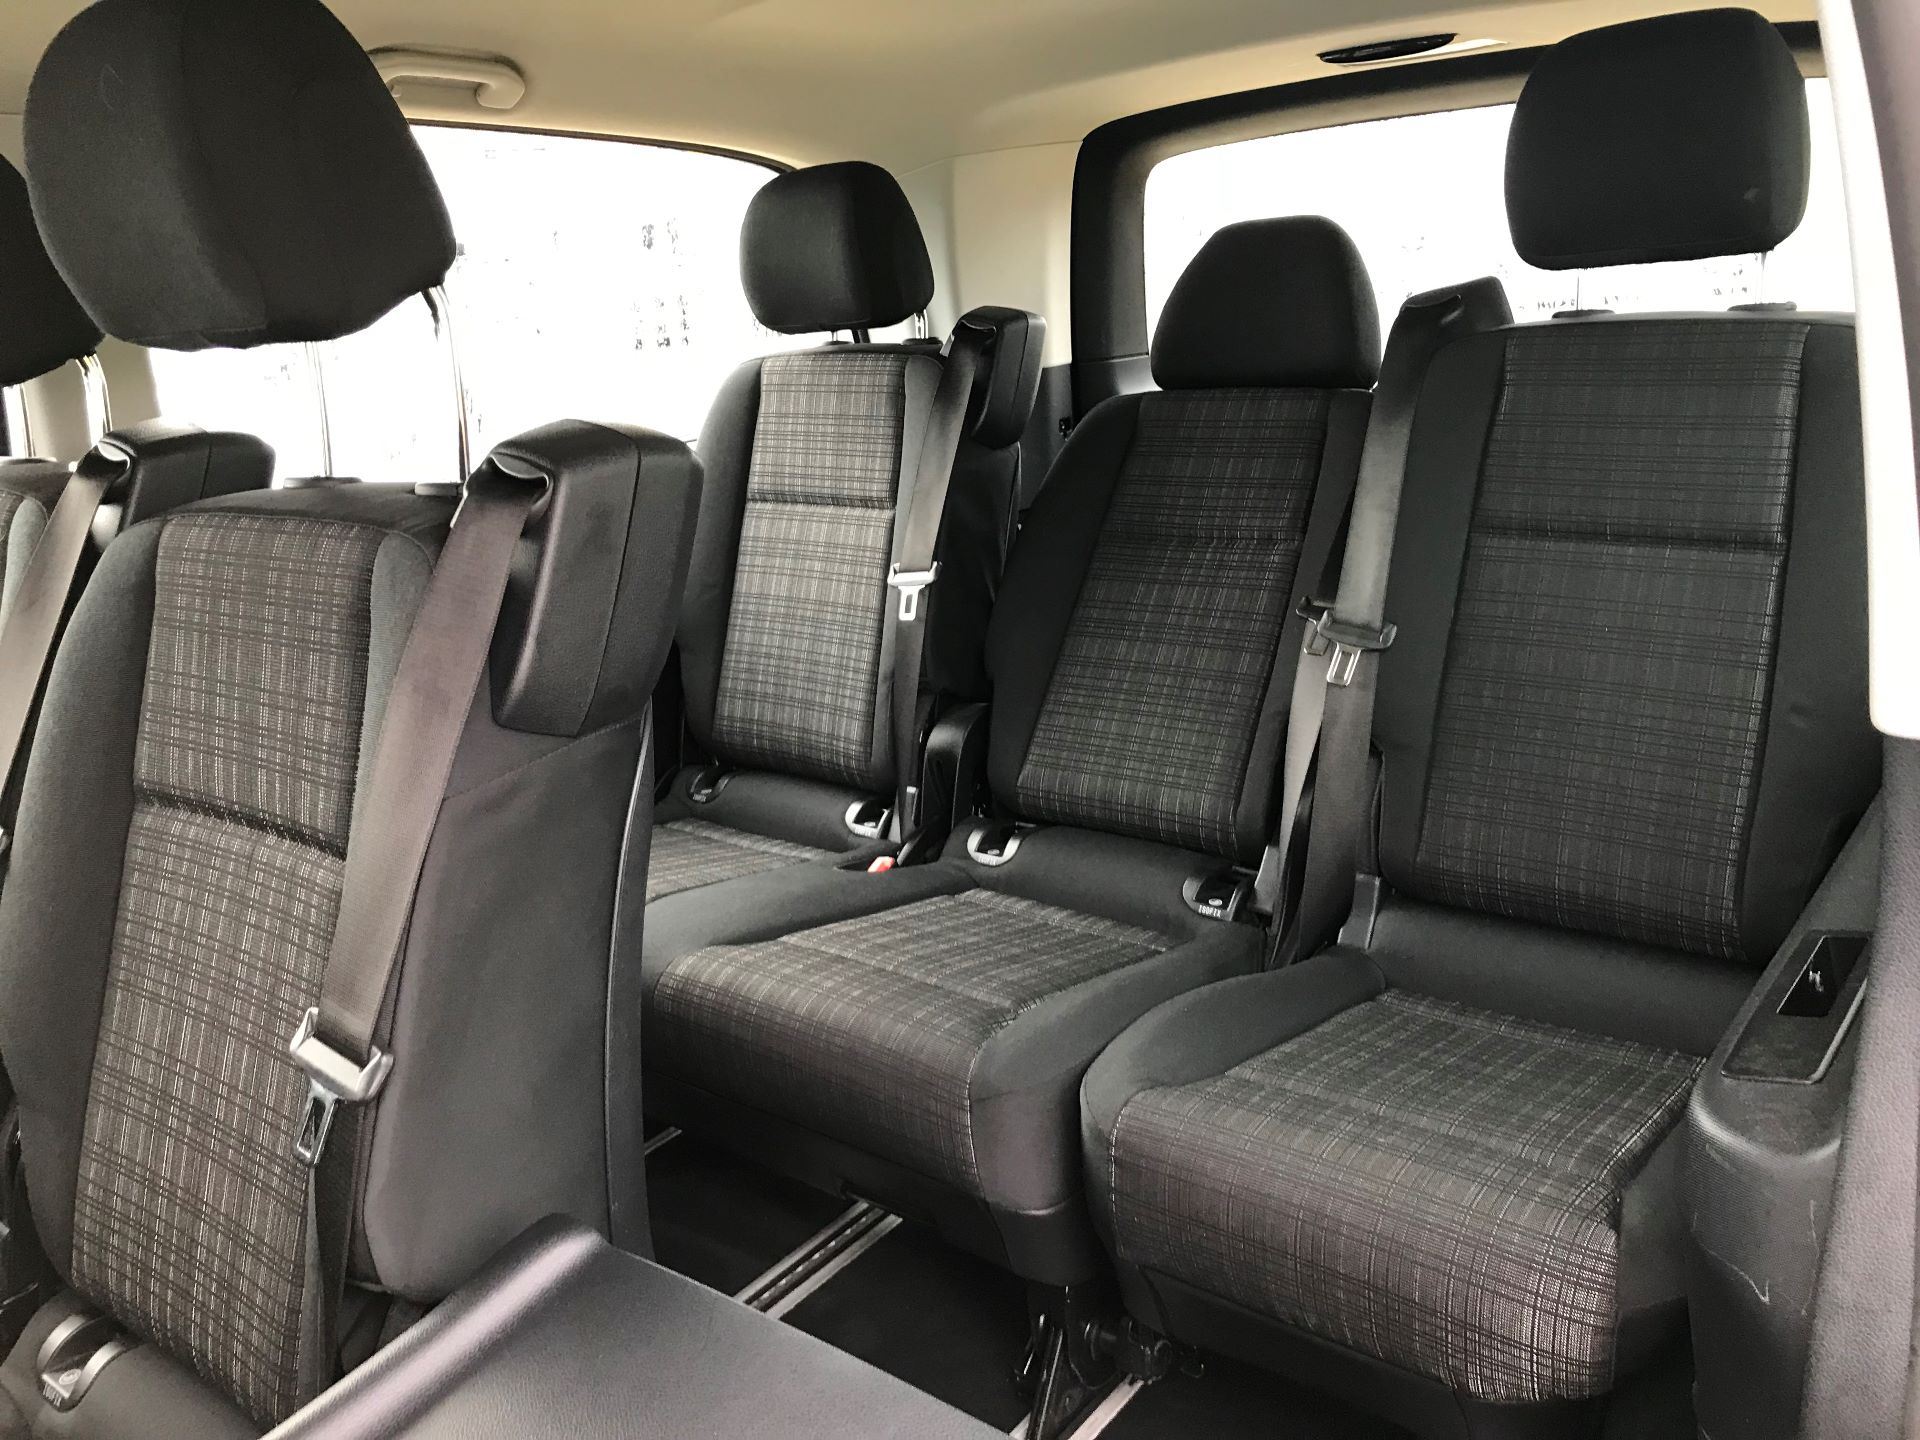 2019 Mercedes-Benz Vito 119 Cdi Select 8-Seater 7G-Tronic (KX19TVT) Image 20